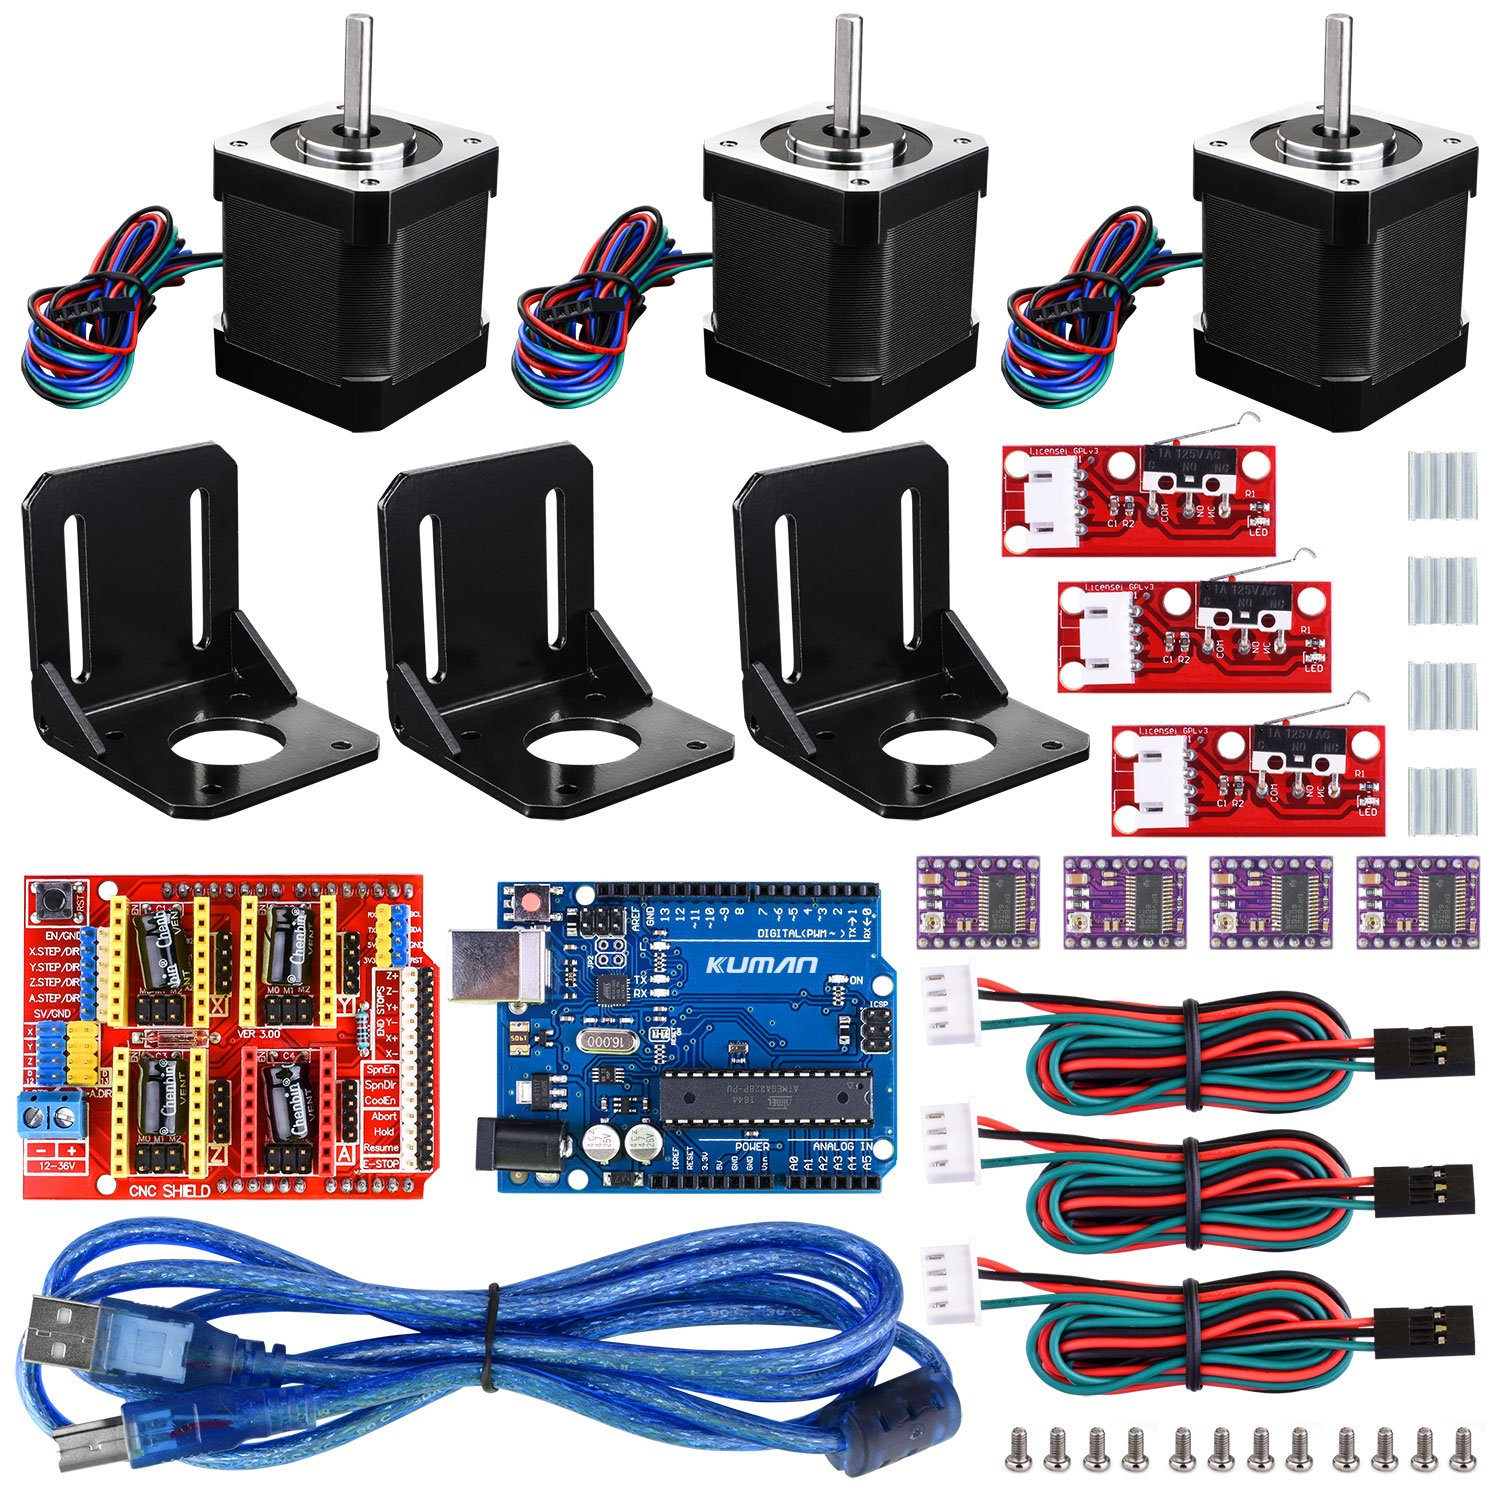 GRBL CNC Shield Professional 3D Printer CNC Kit UNO R3 Board+RAMPS 1.4 Mechanical Switch Endstop+DRV8825 GRBL Stepper Motor Driver+Nema 17 Stepper Motor